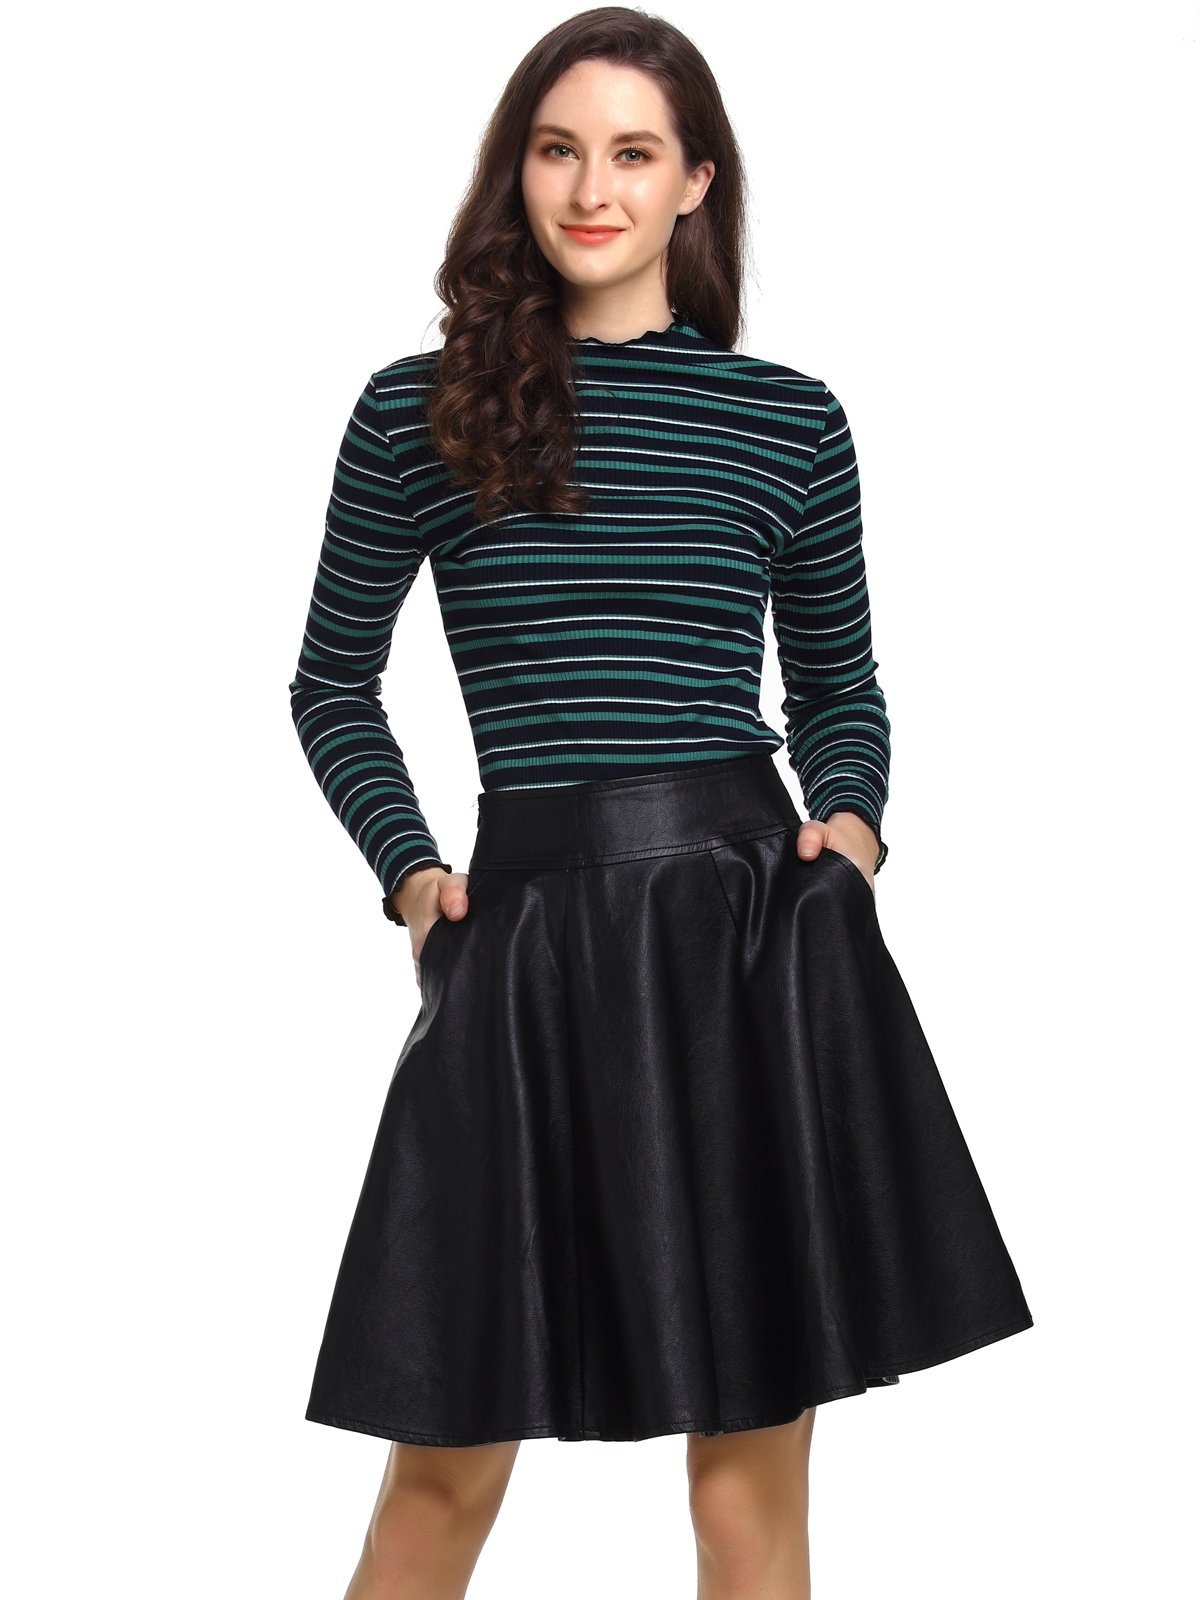 Beluring Womens Ladies Faux Leather Skirts A-Line Pleated Skirt with Pockets